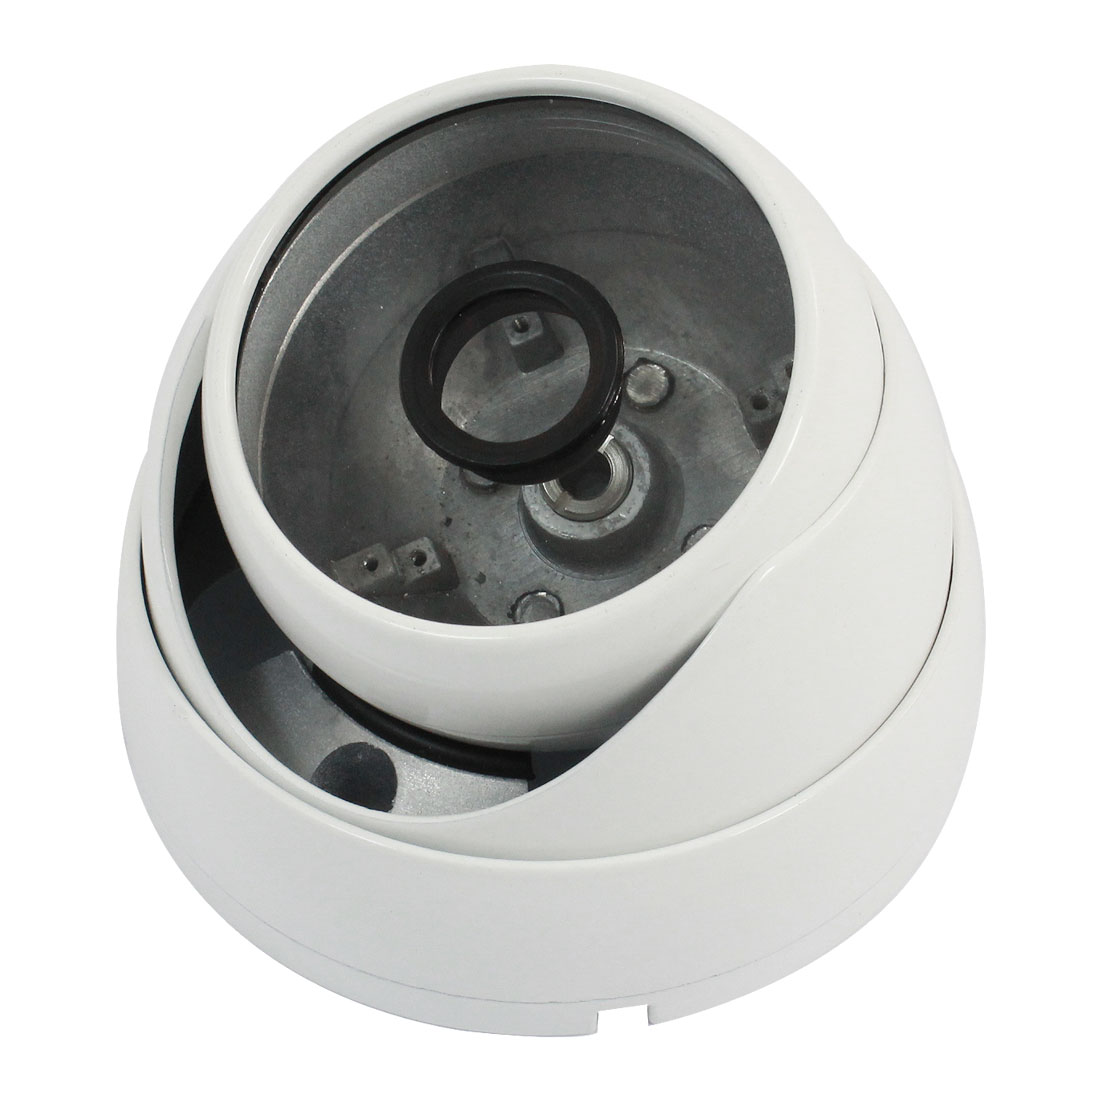 "Surveillance White Metal CCTV Dome Camera Housing Case 3.6"" Dia"